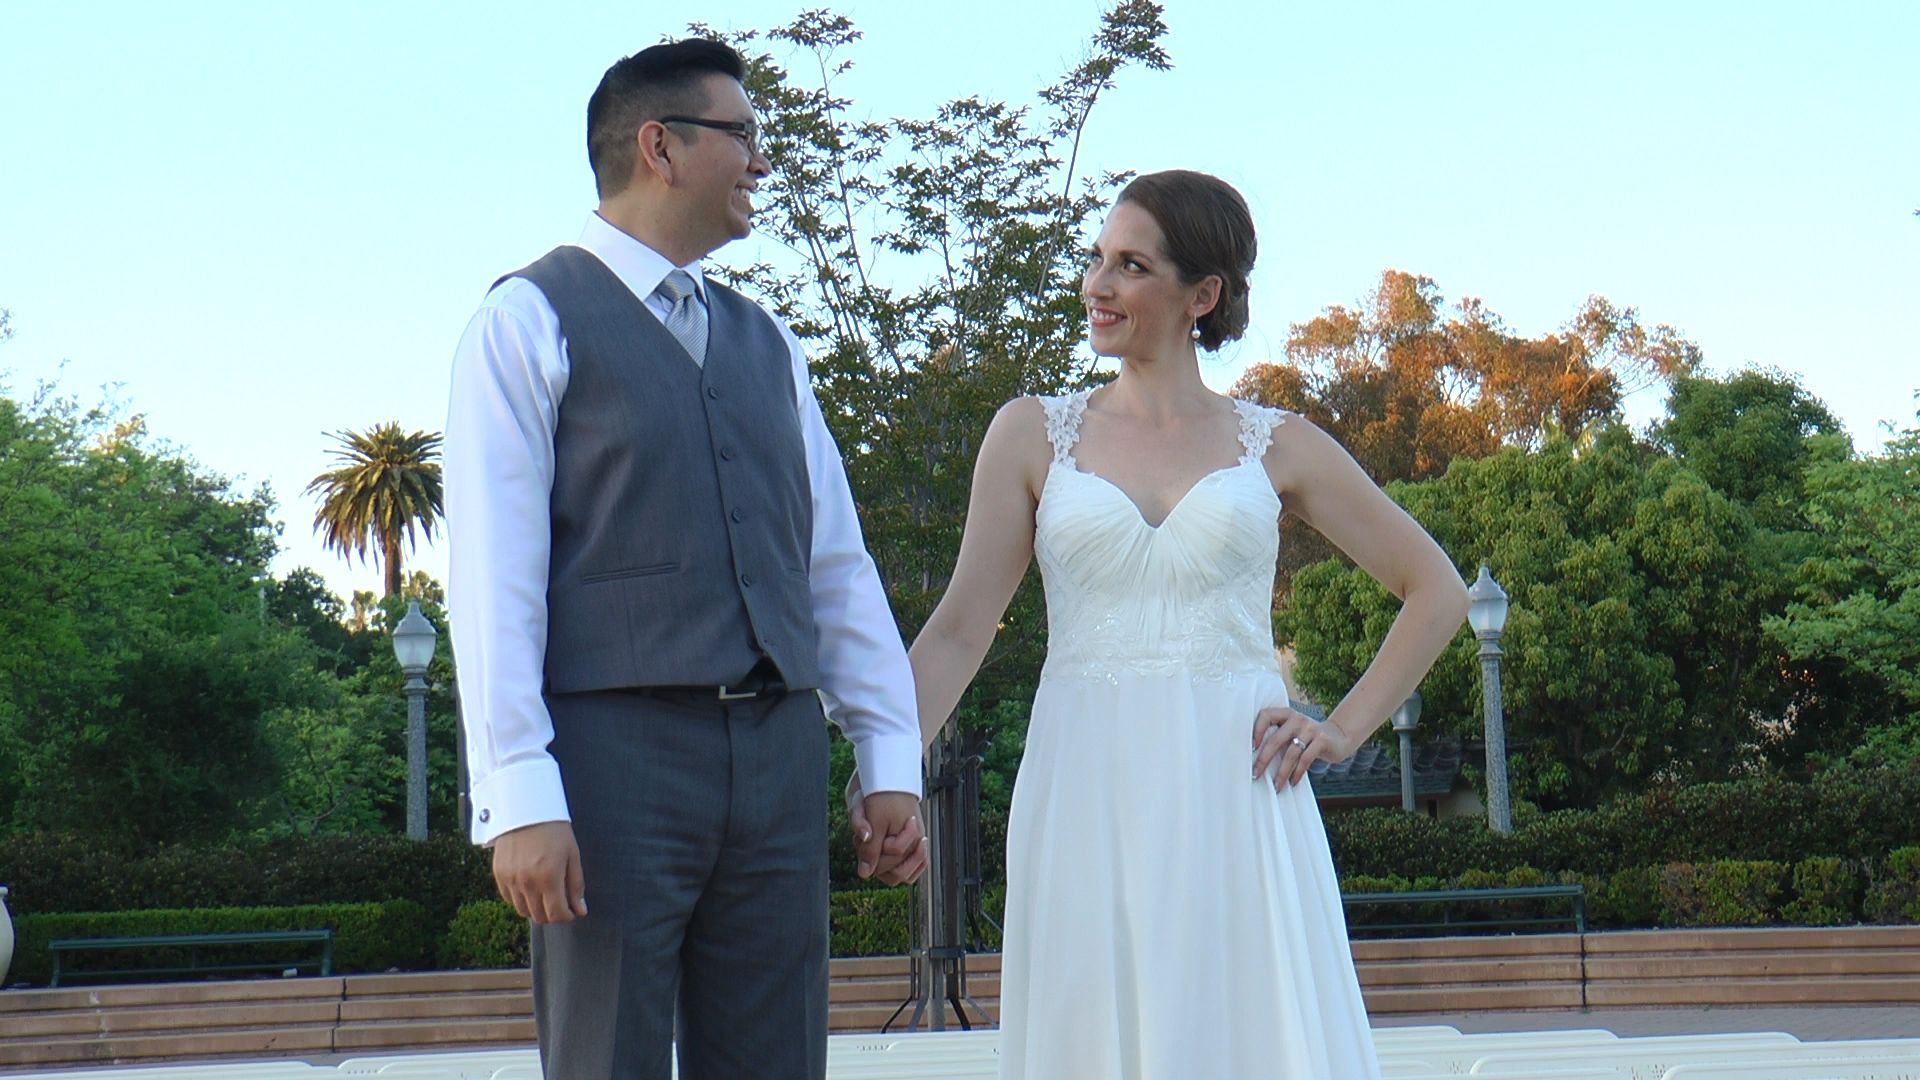 San Diego Production Company Gives You Wedding Videography